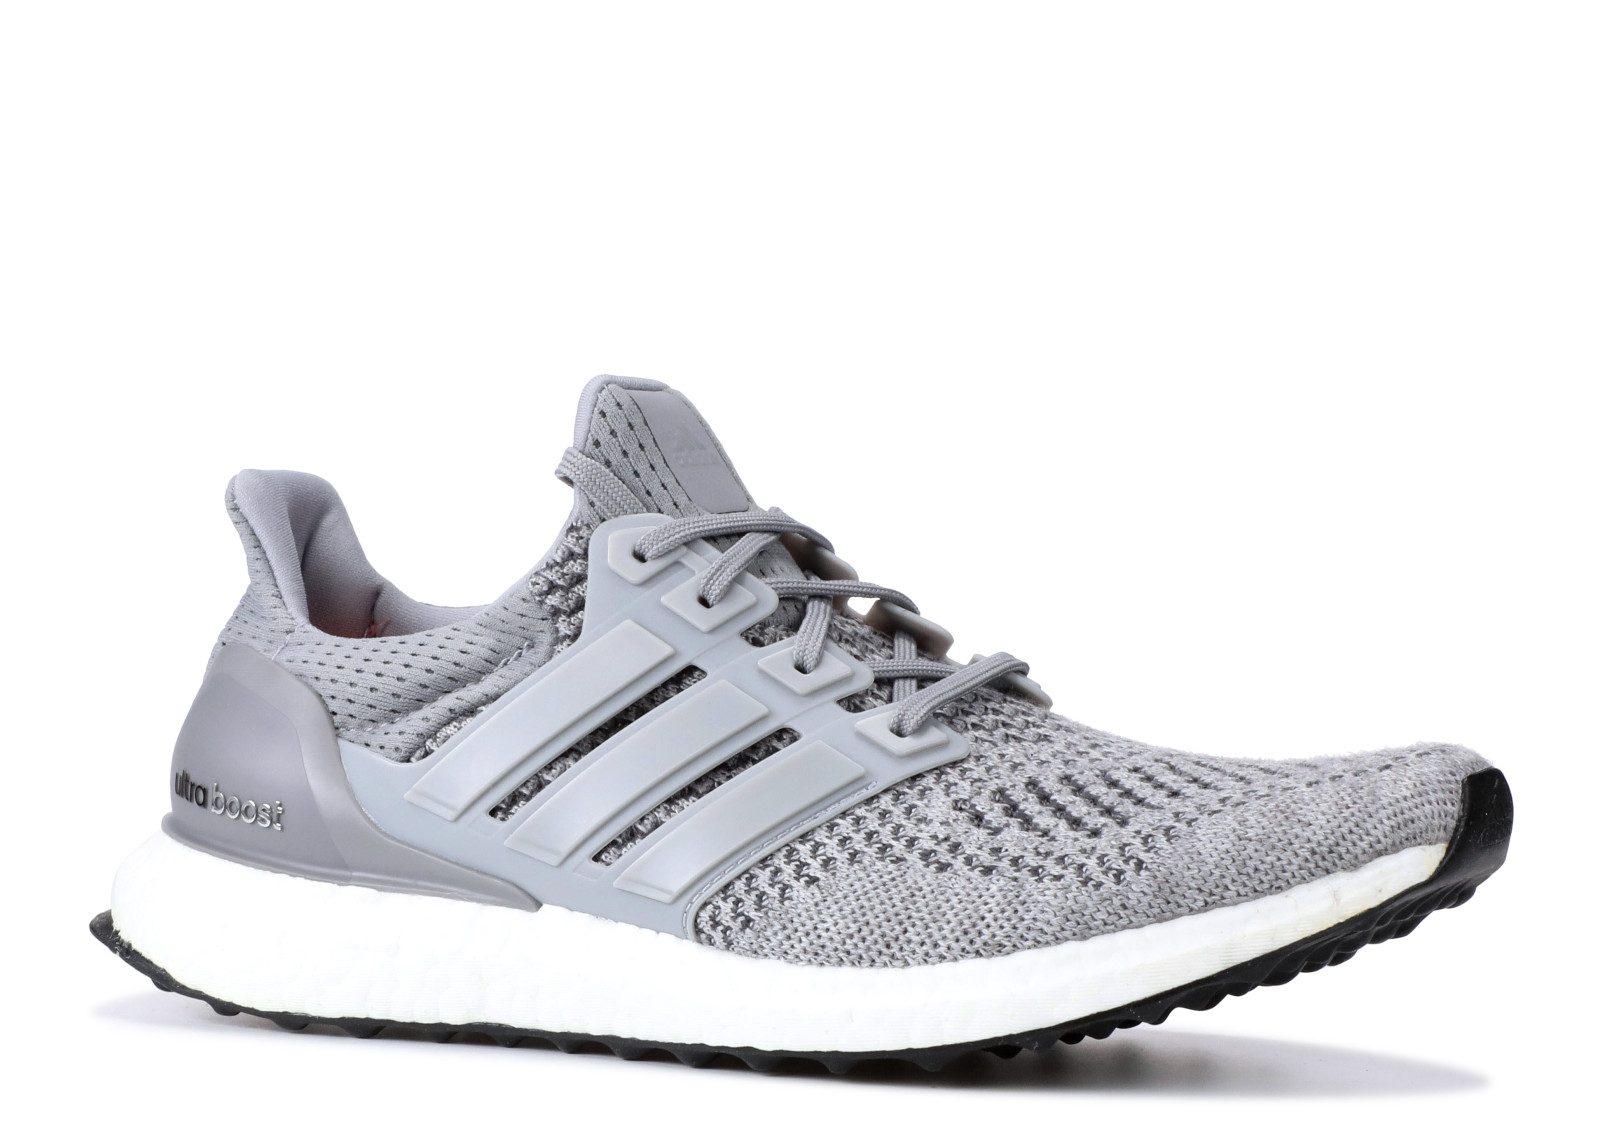 31cfd2d36f932 Ultra Boost - S77510 - Size 9